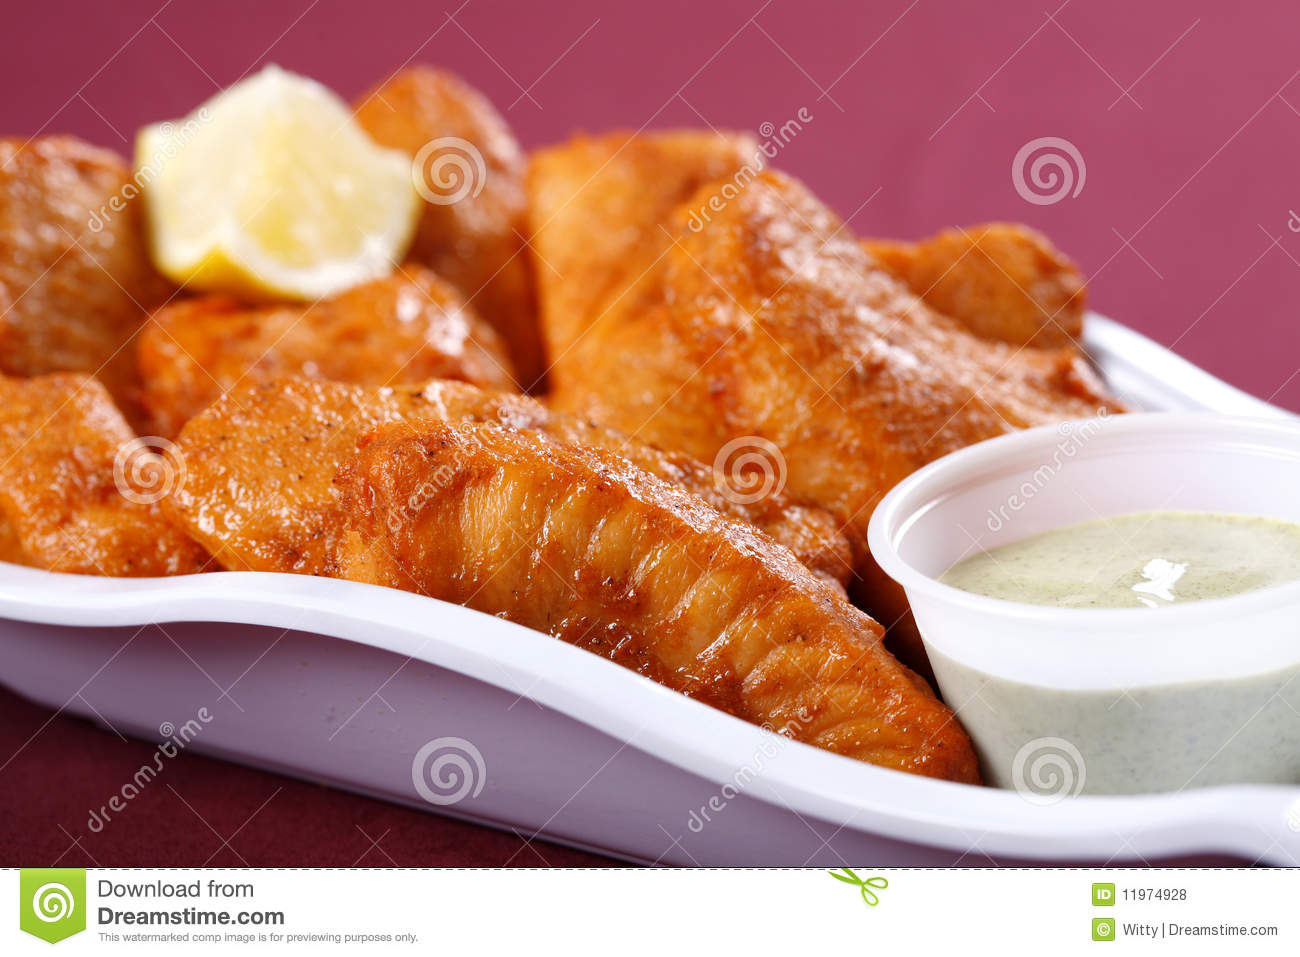 Oven baked fish royalty free stock photos image 11974928 for Fish in oven